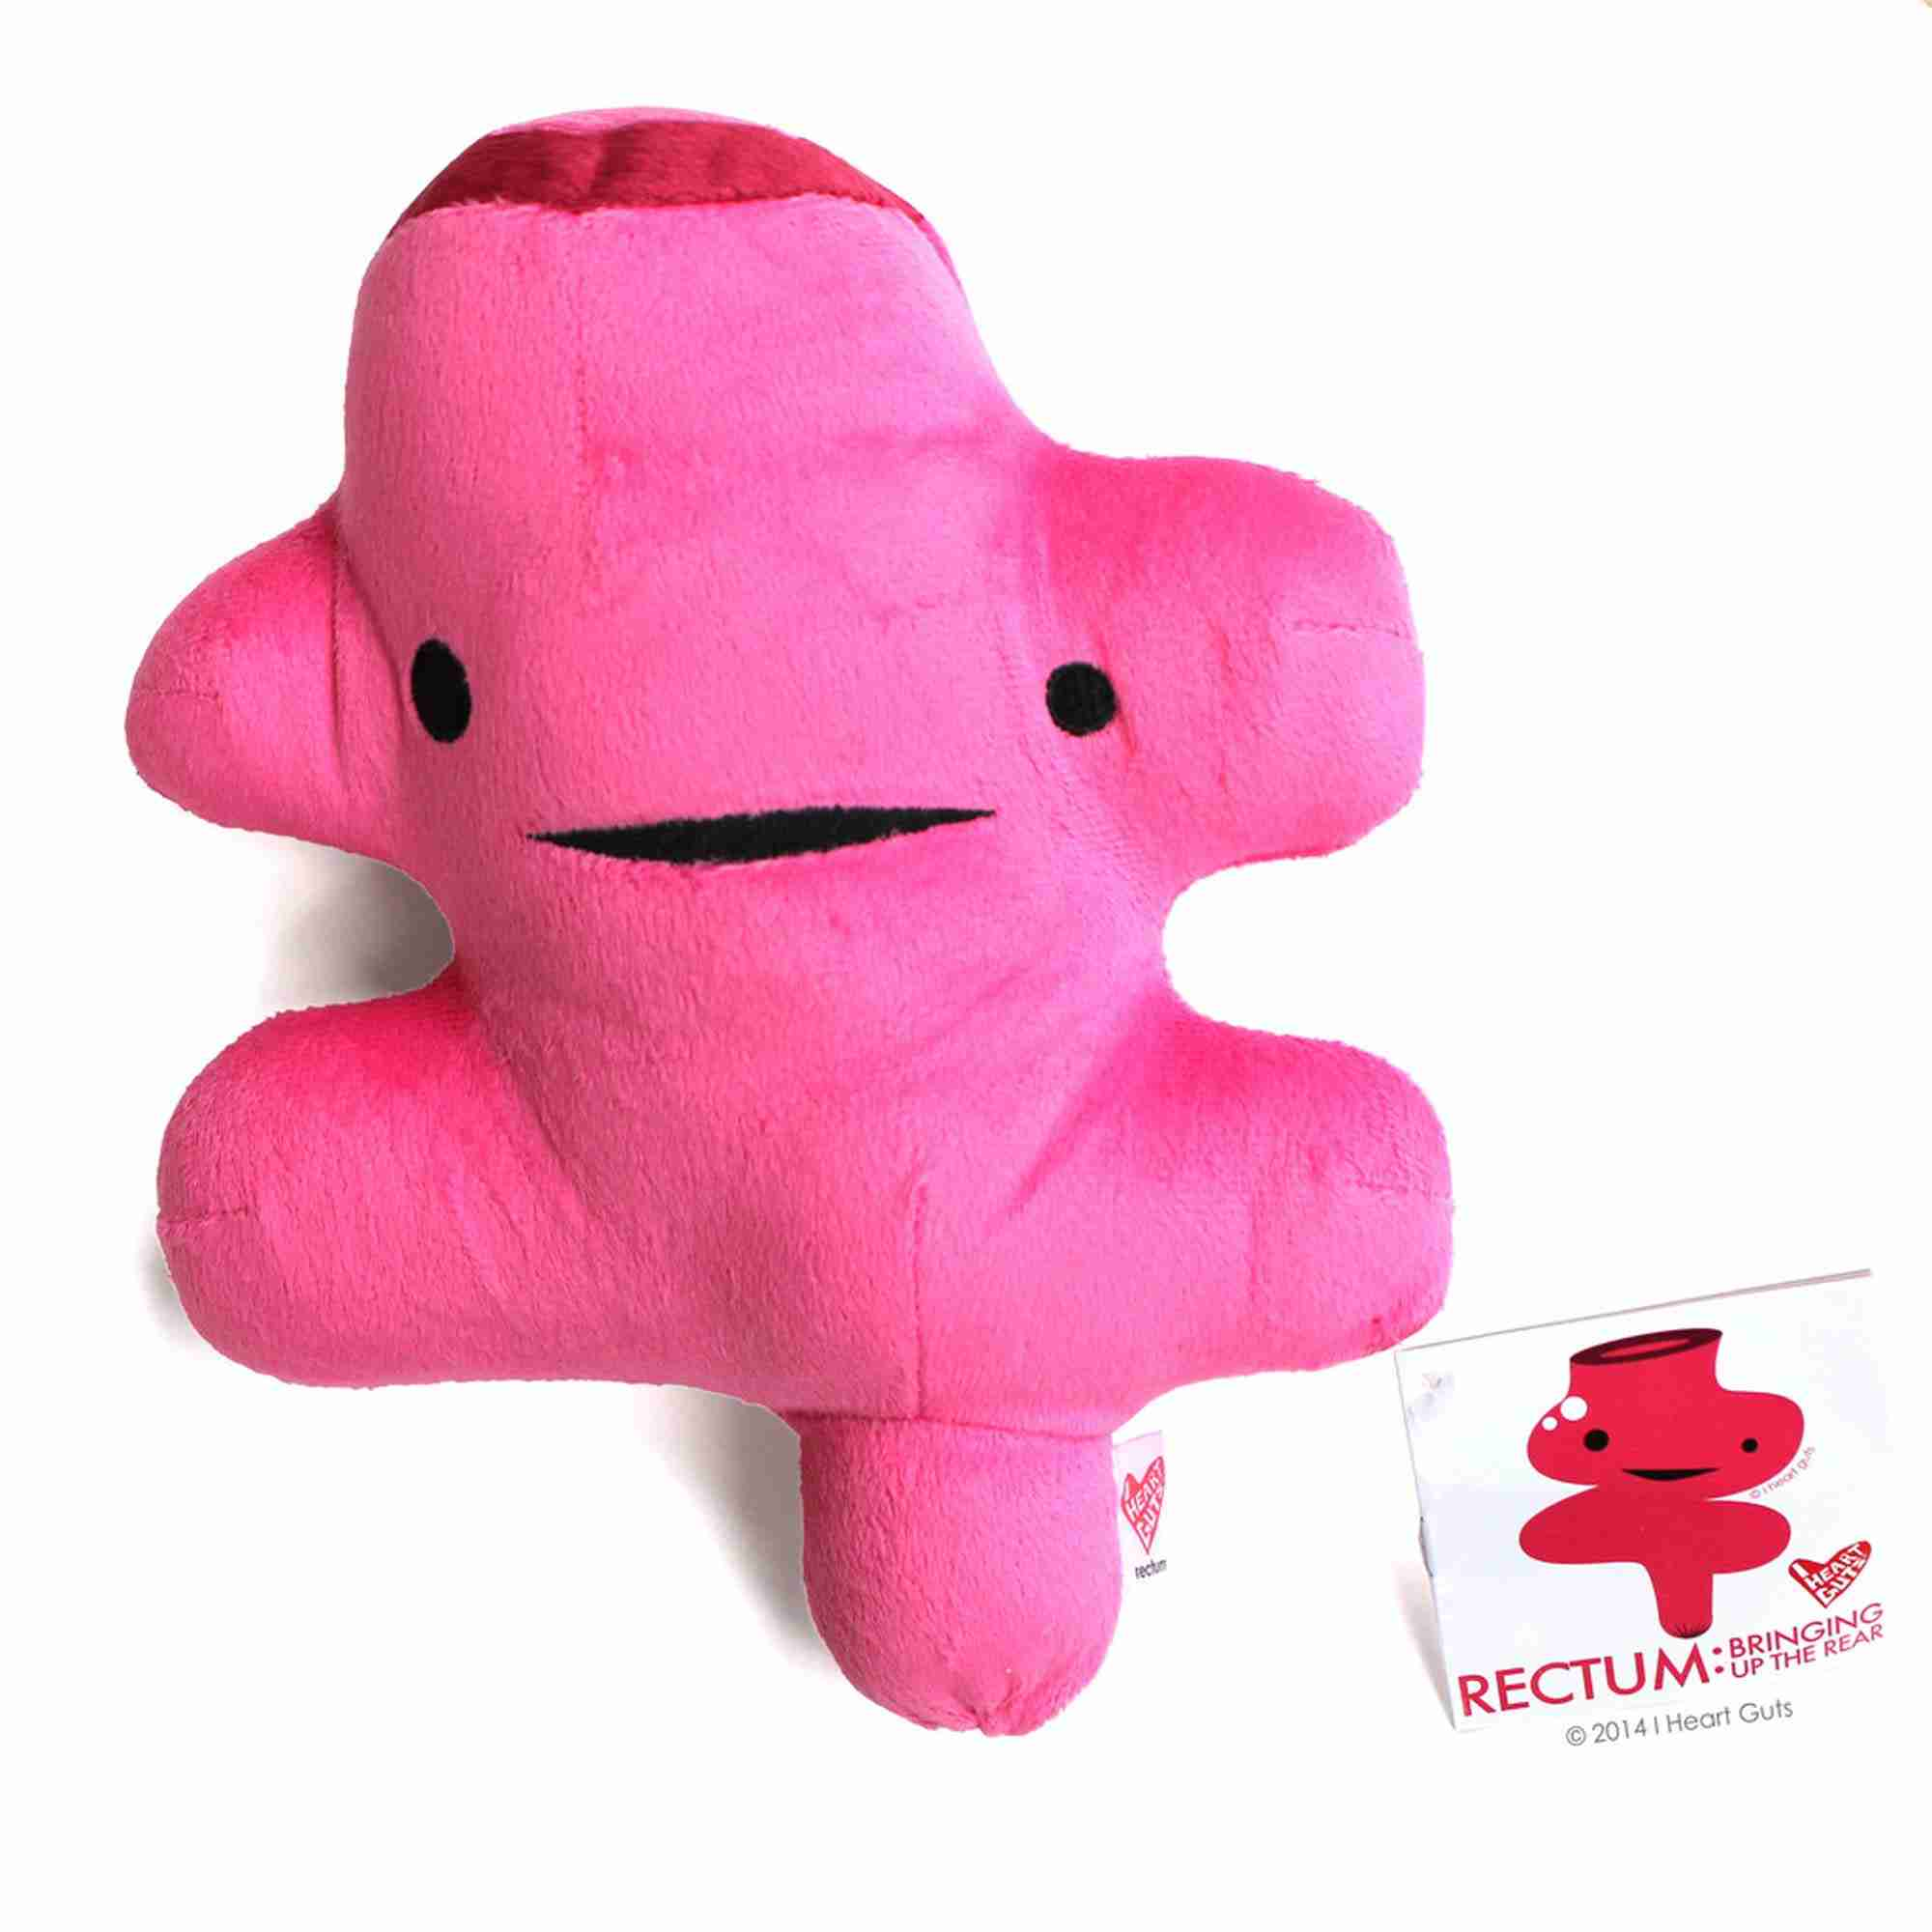 Rectum Plushie by I Heart Guts